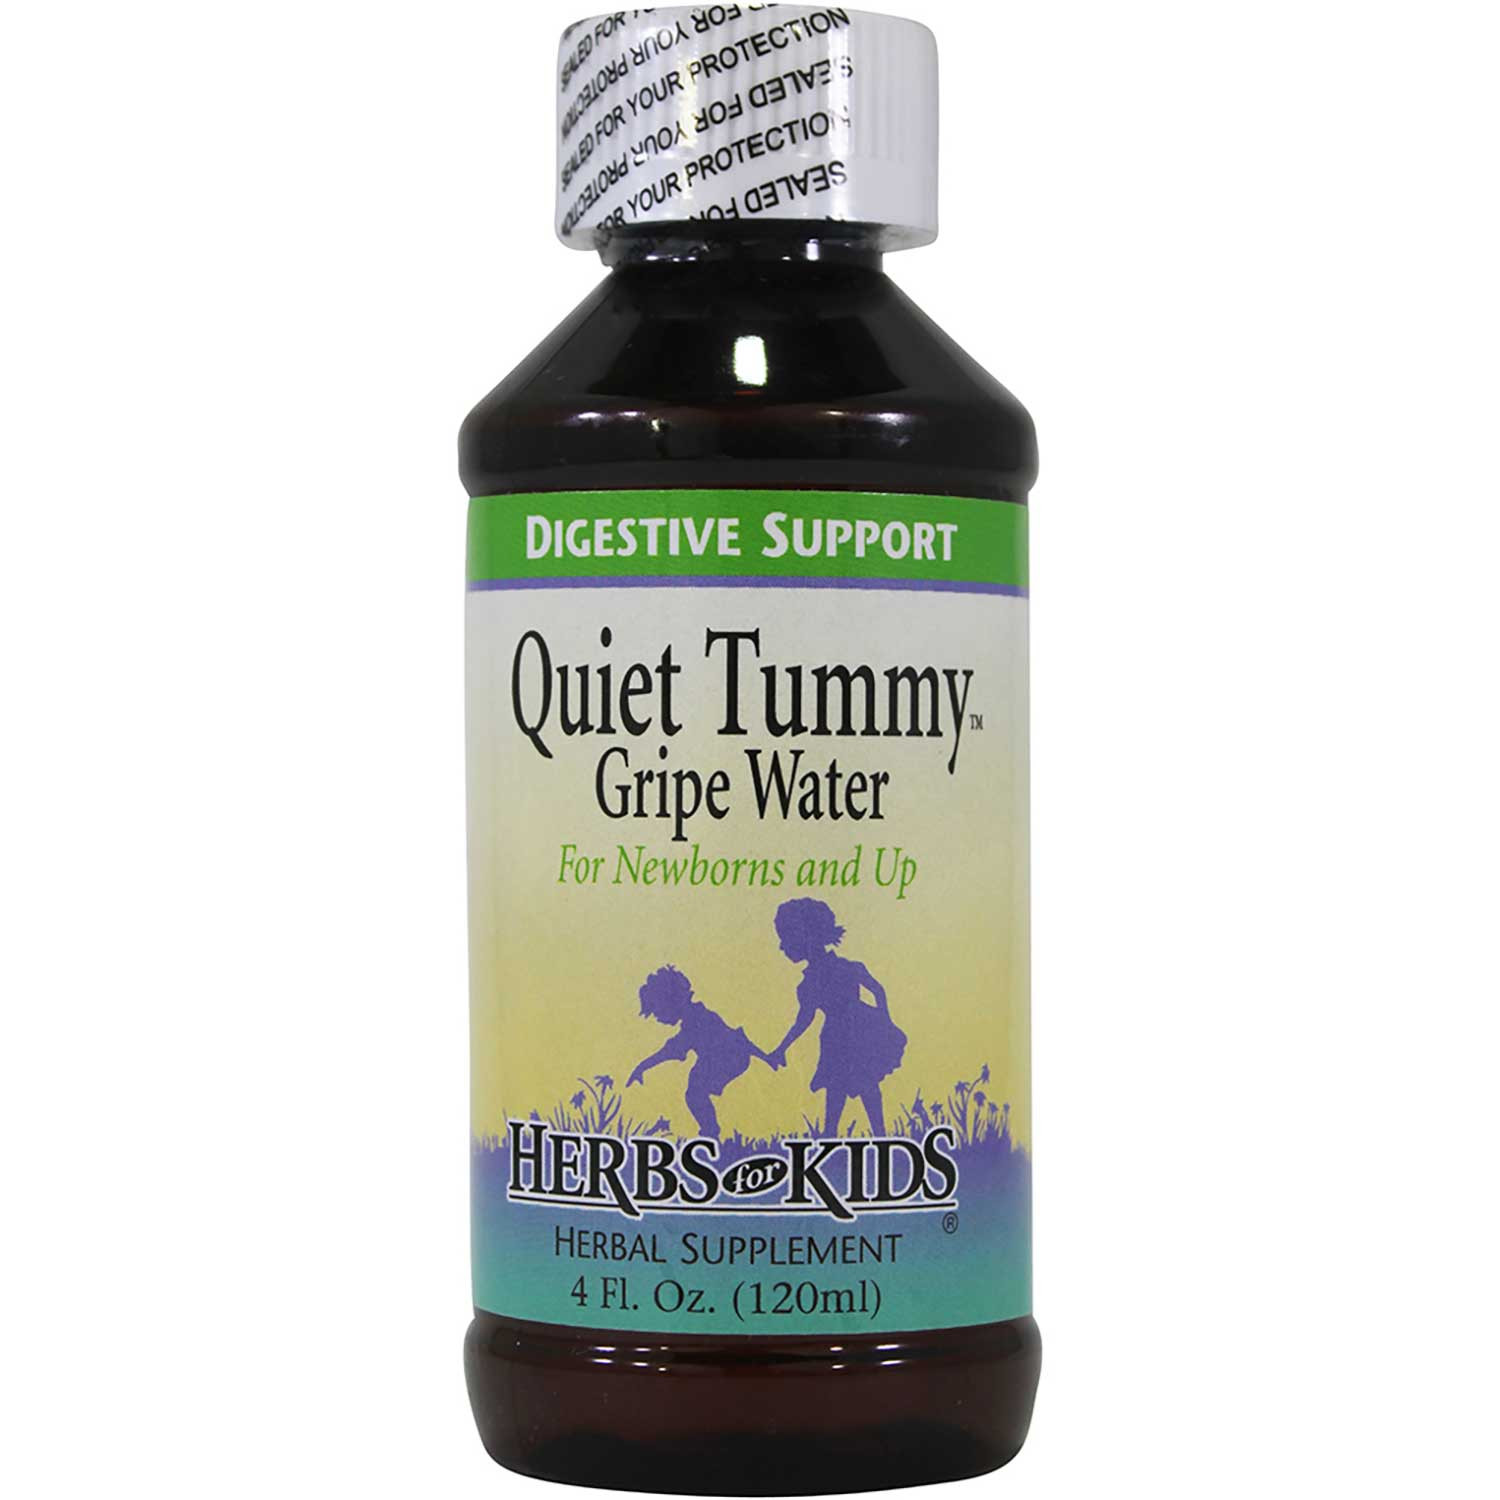 Herbs for Kids Quiet Tummy Gripe Water, 120 ml